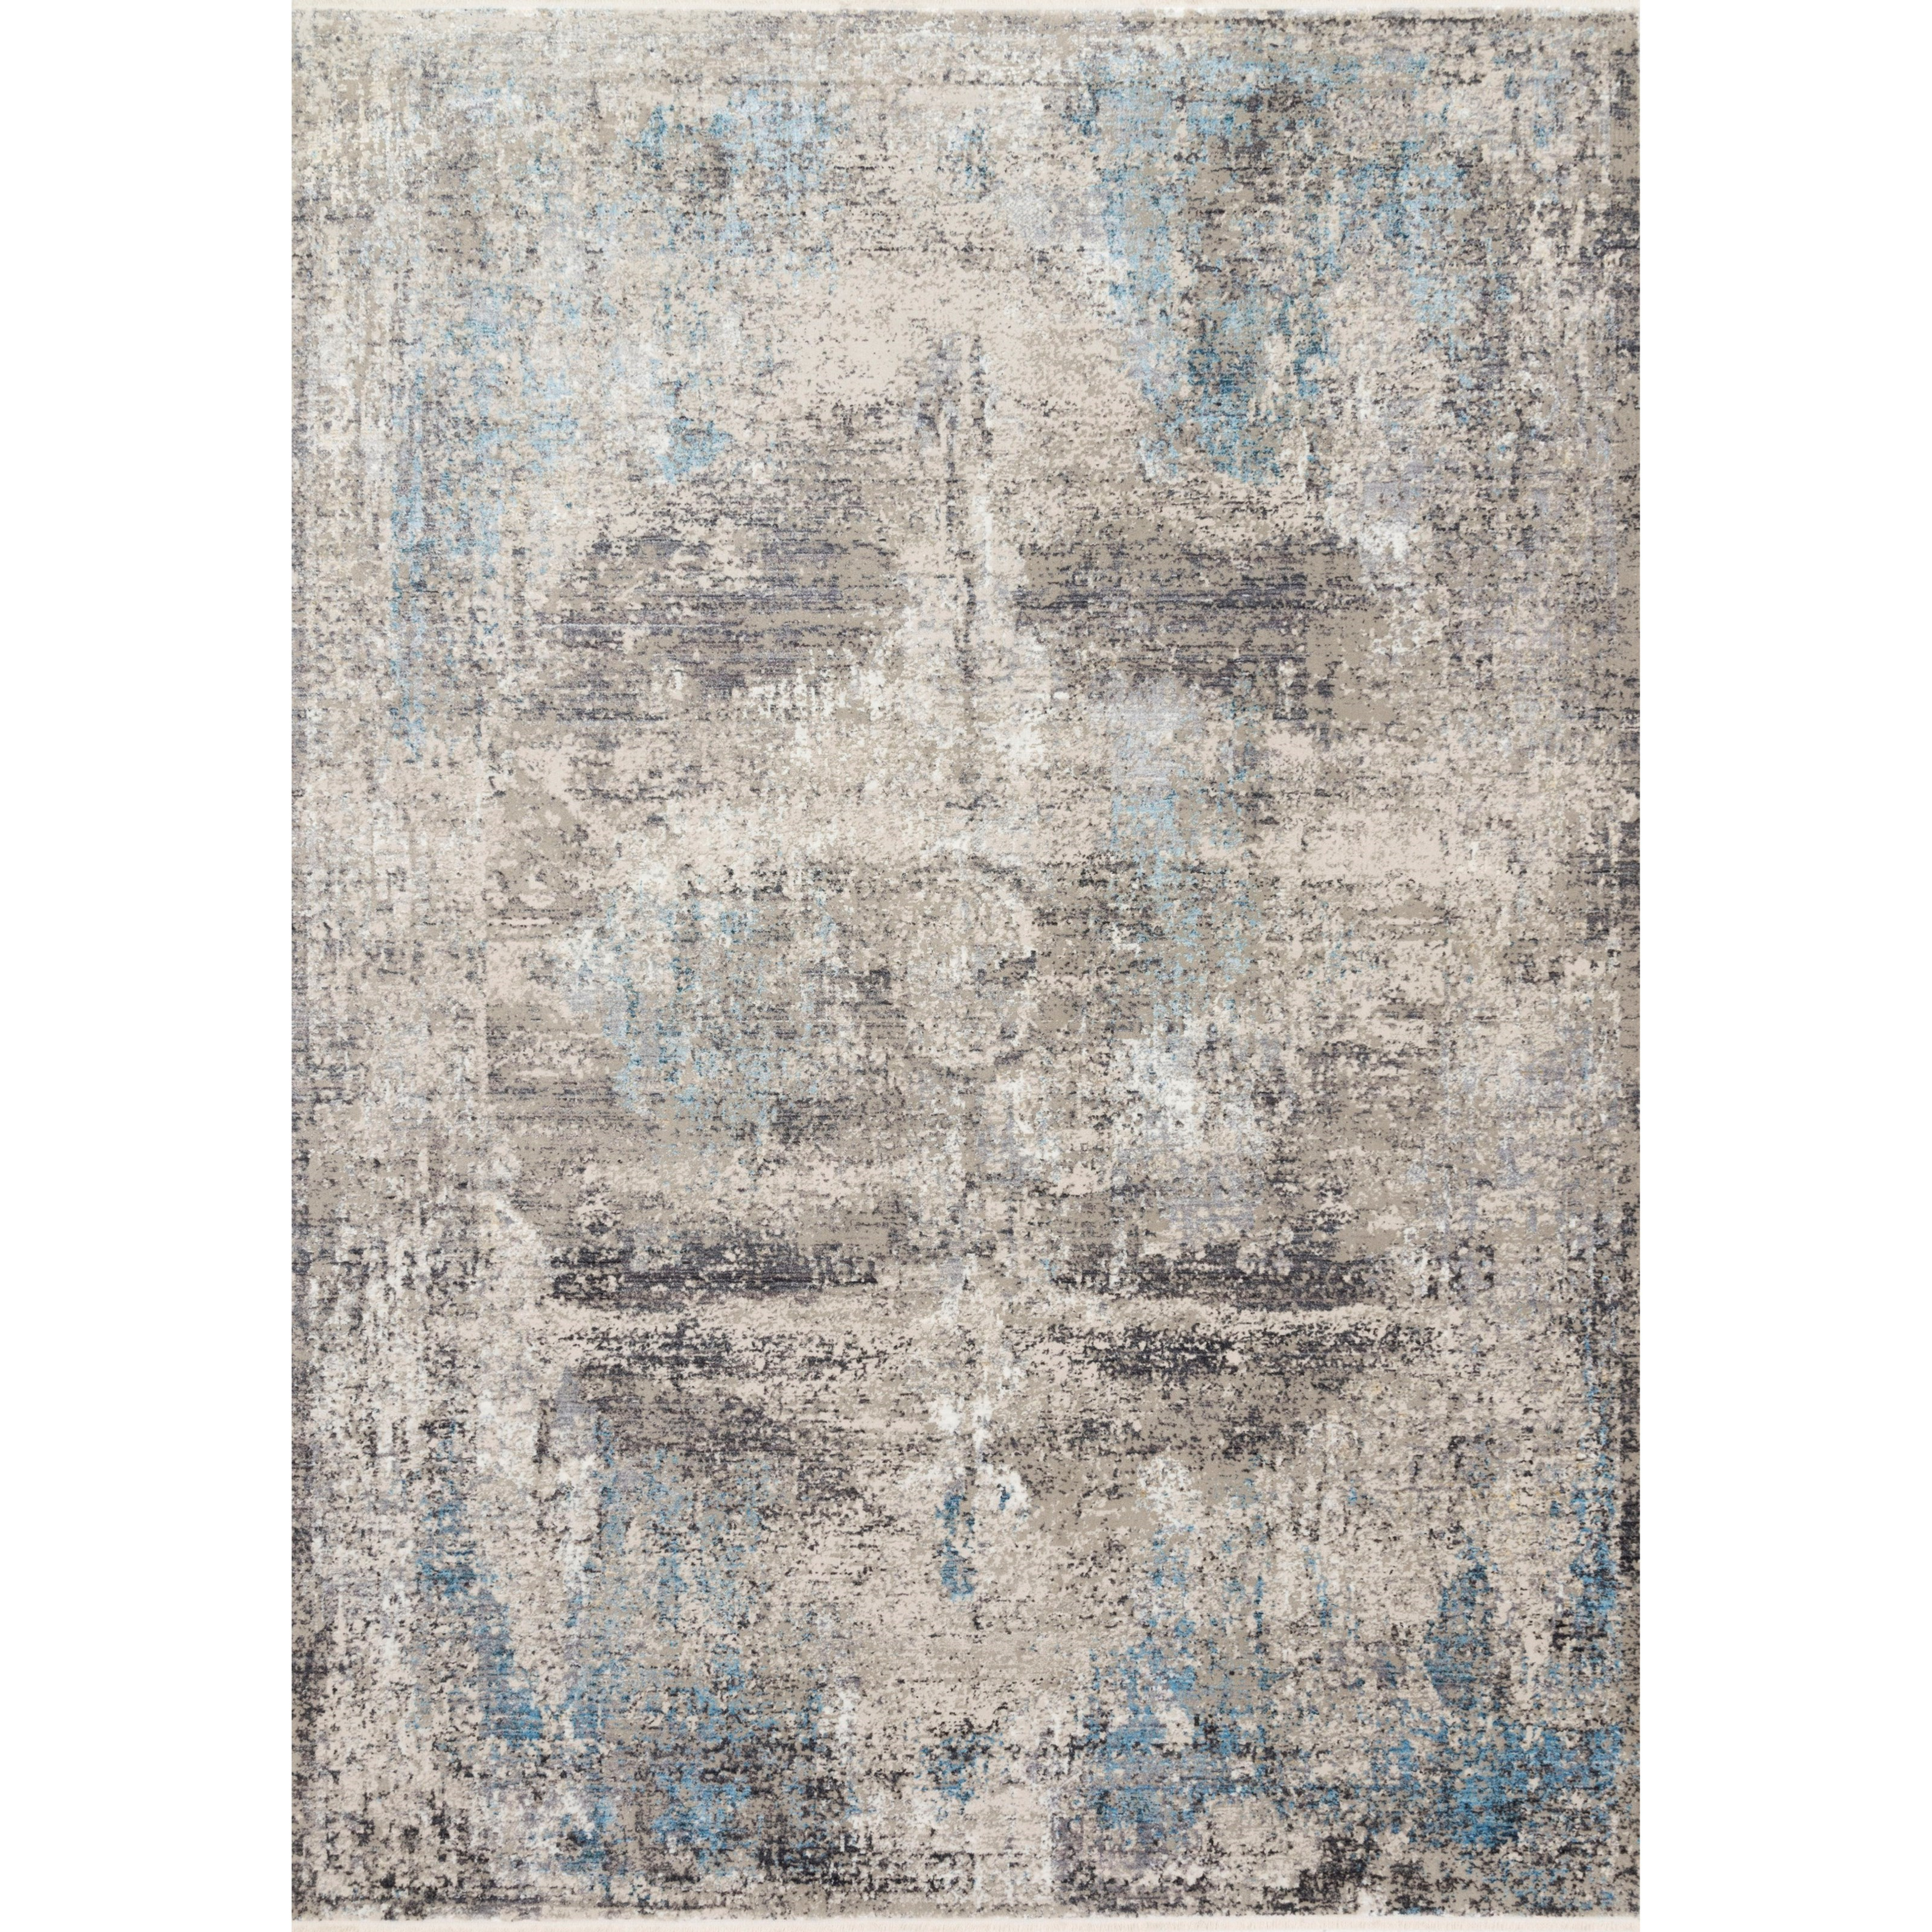 "Franca 2'3"" x 4'0"" Slate / Sky Rug by Loloi Rugs at Sprintz Furniture"